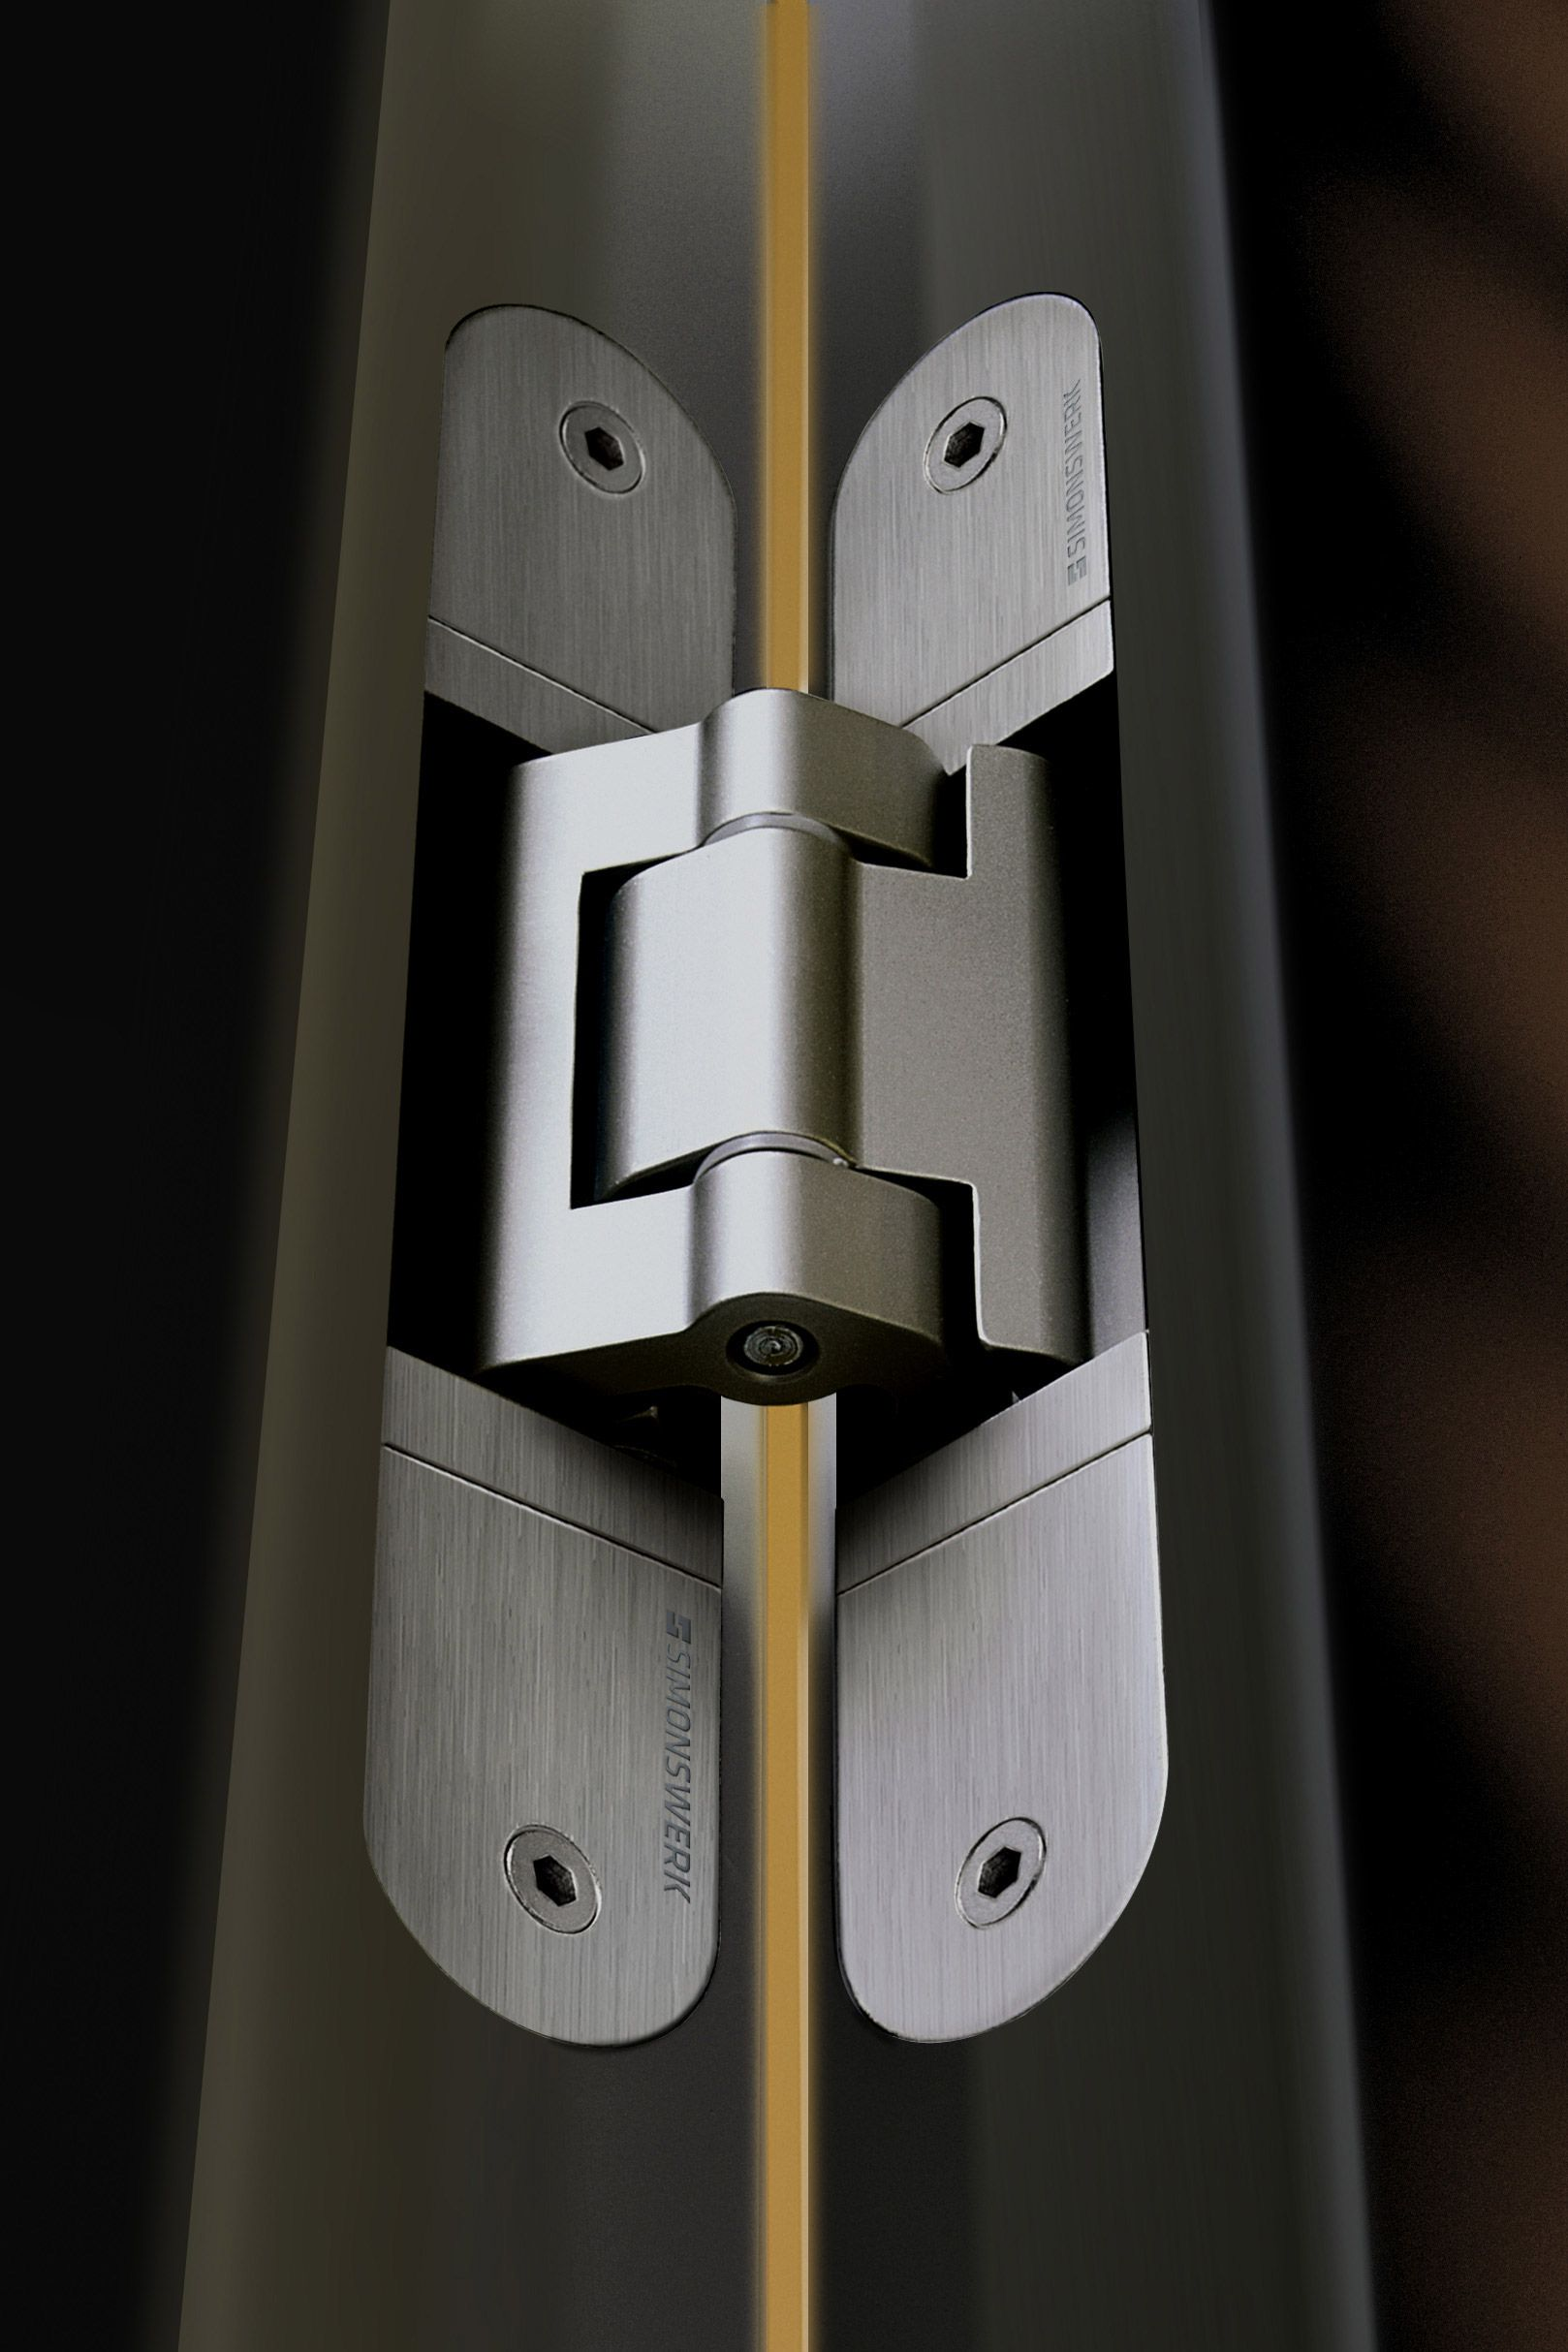 Le Meilleur Concealed Hinge Example Contemporary Door Hardware In Ce Mois Ci